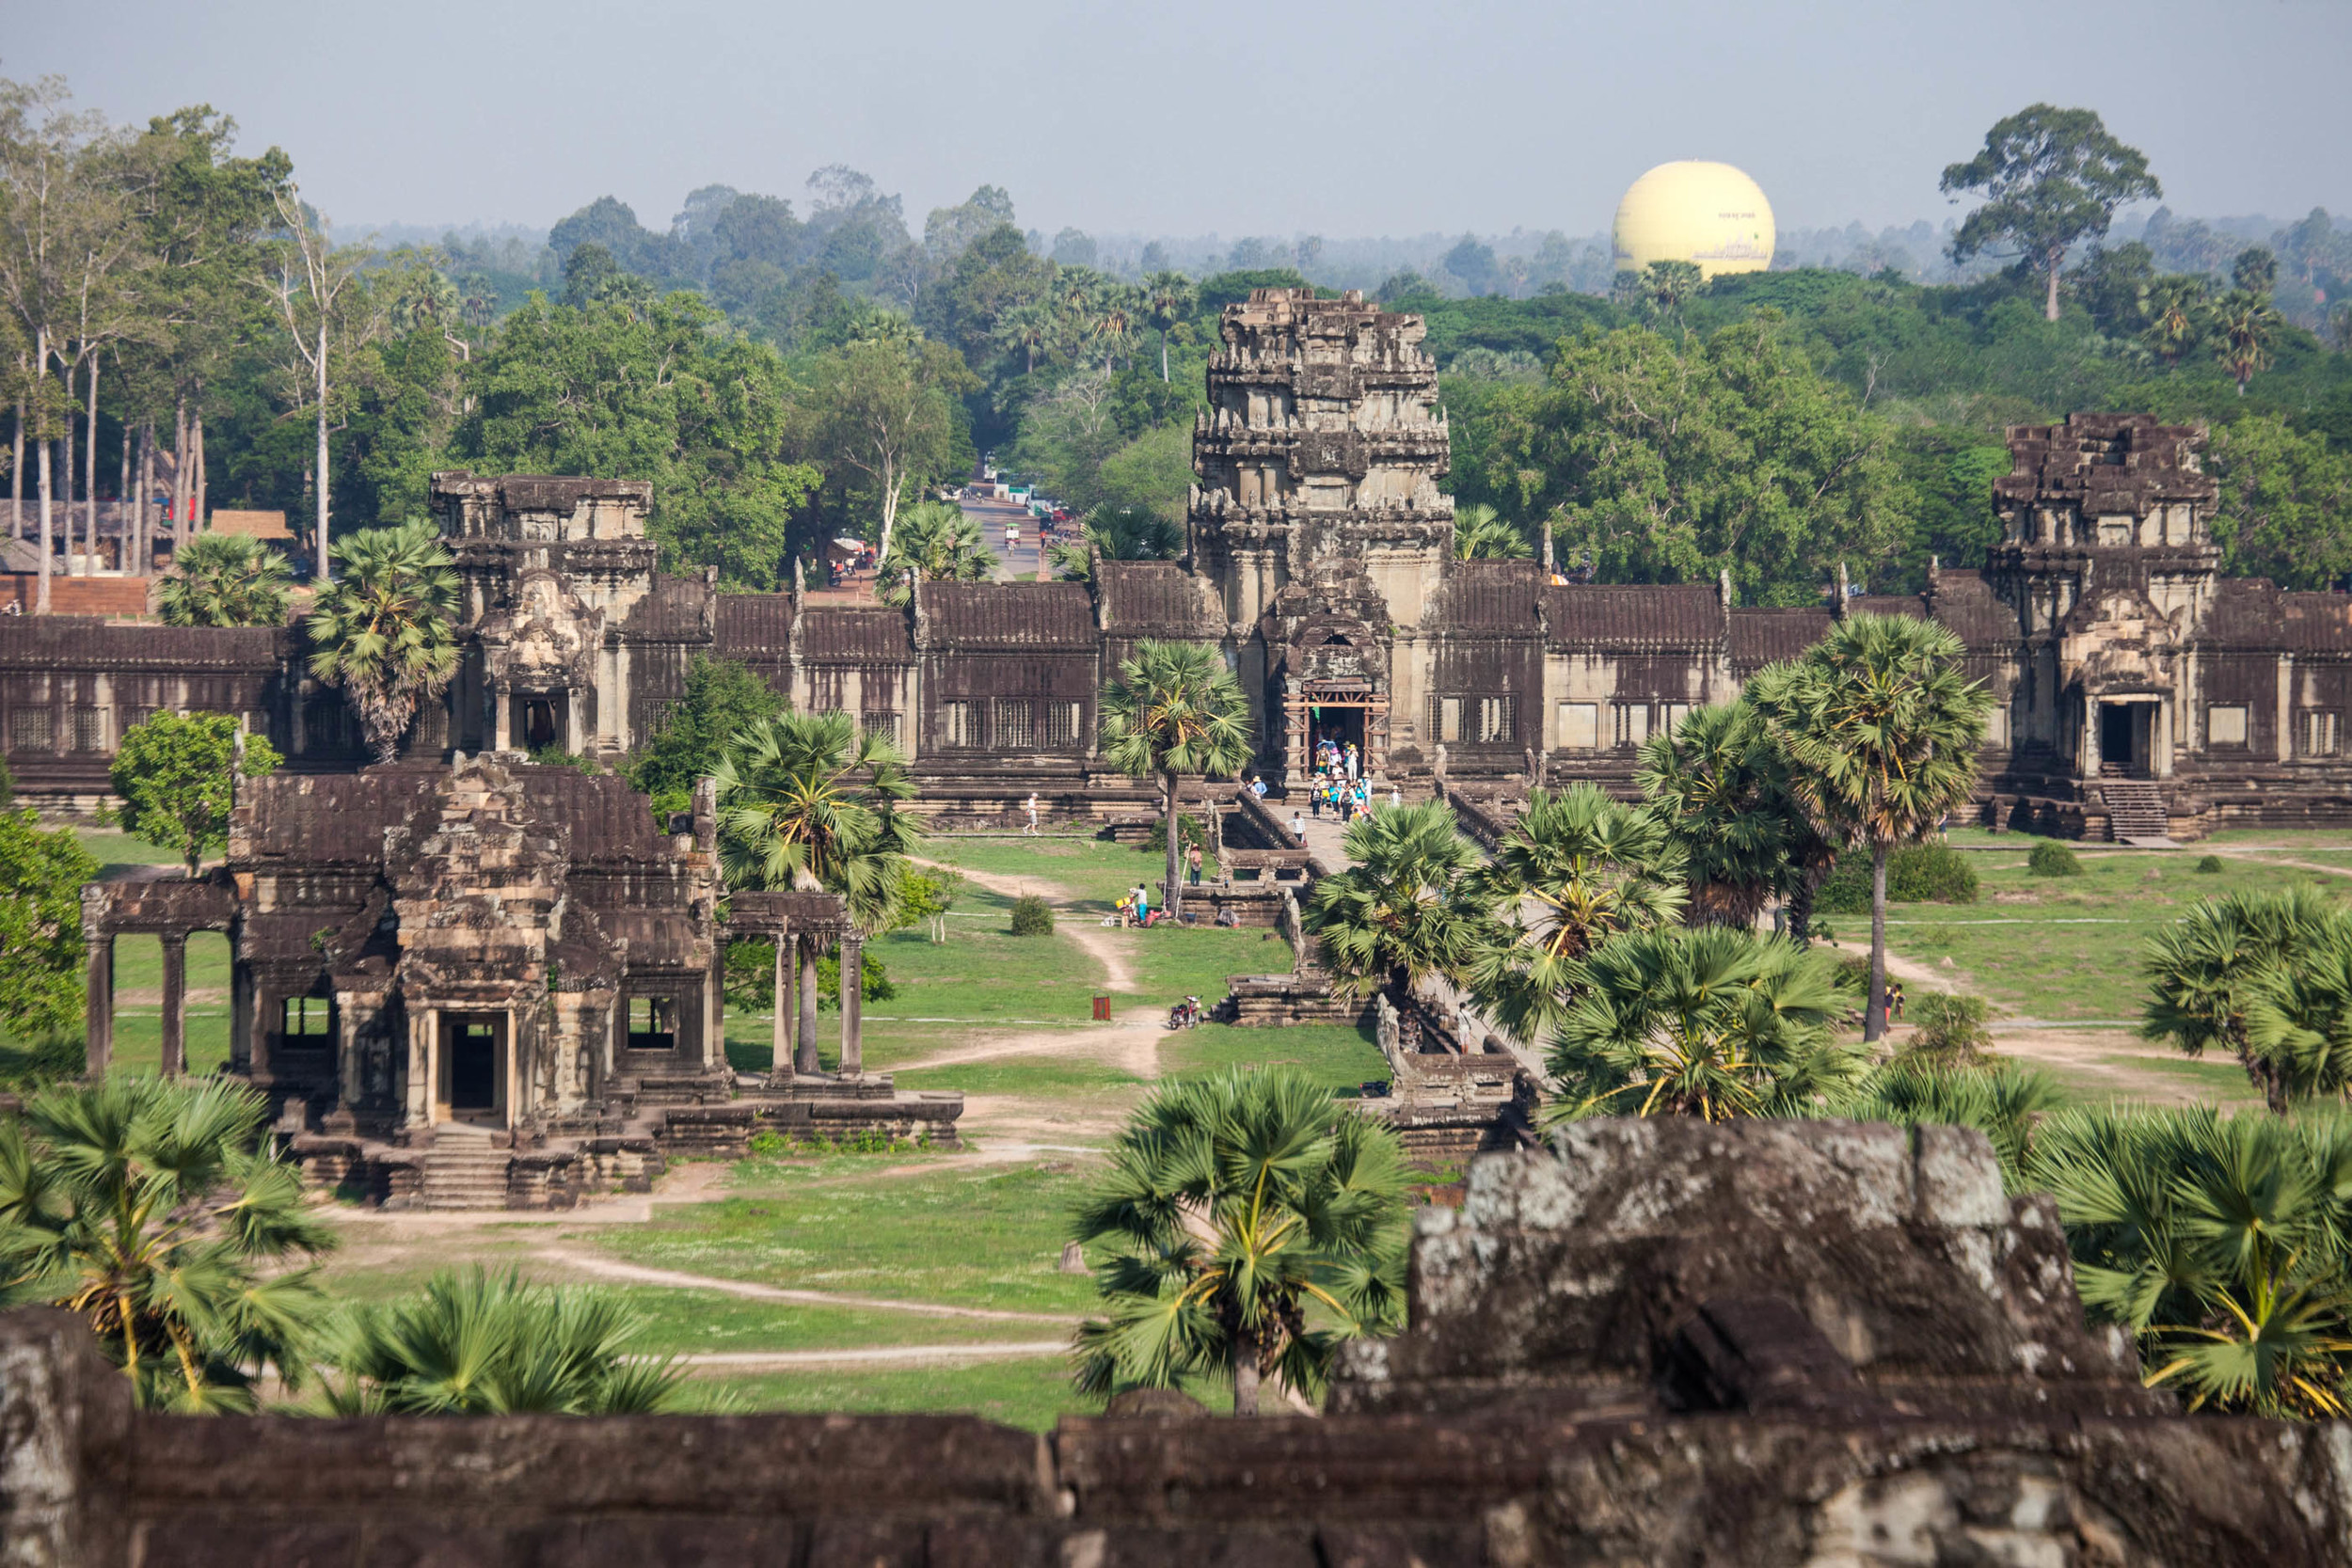 A view from the Angor Wat